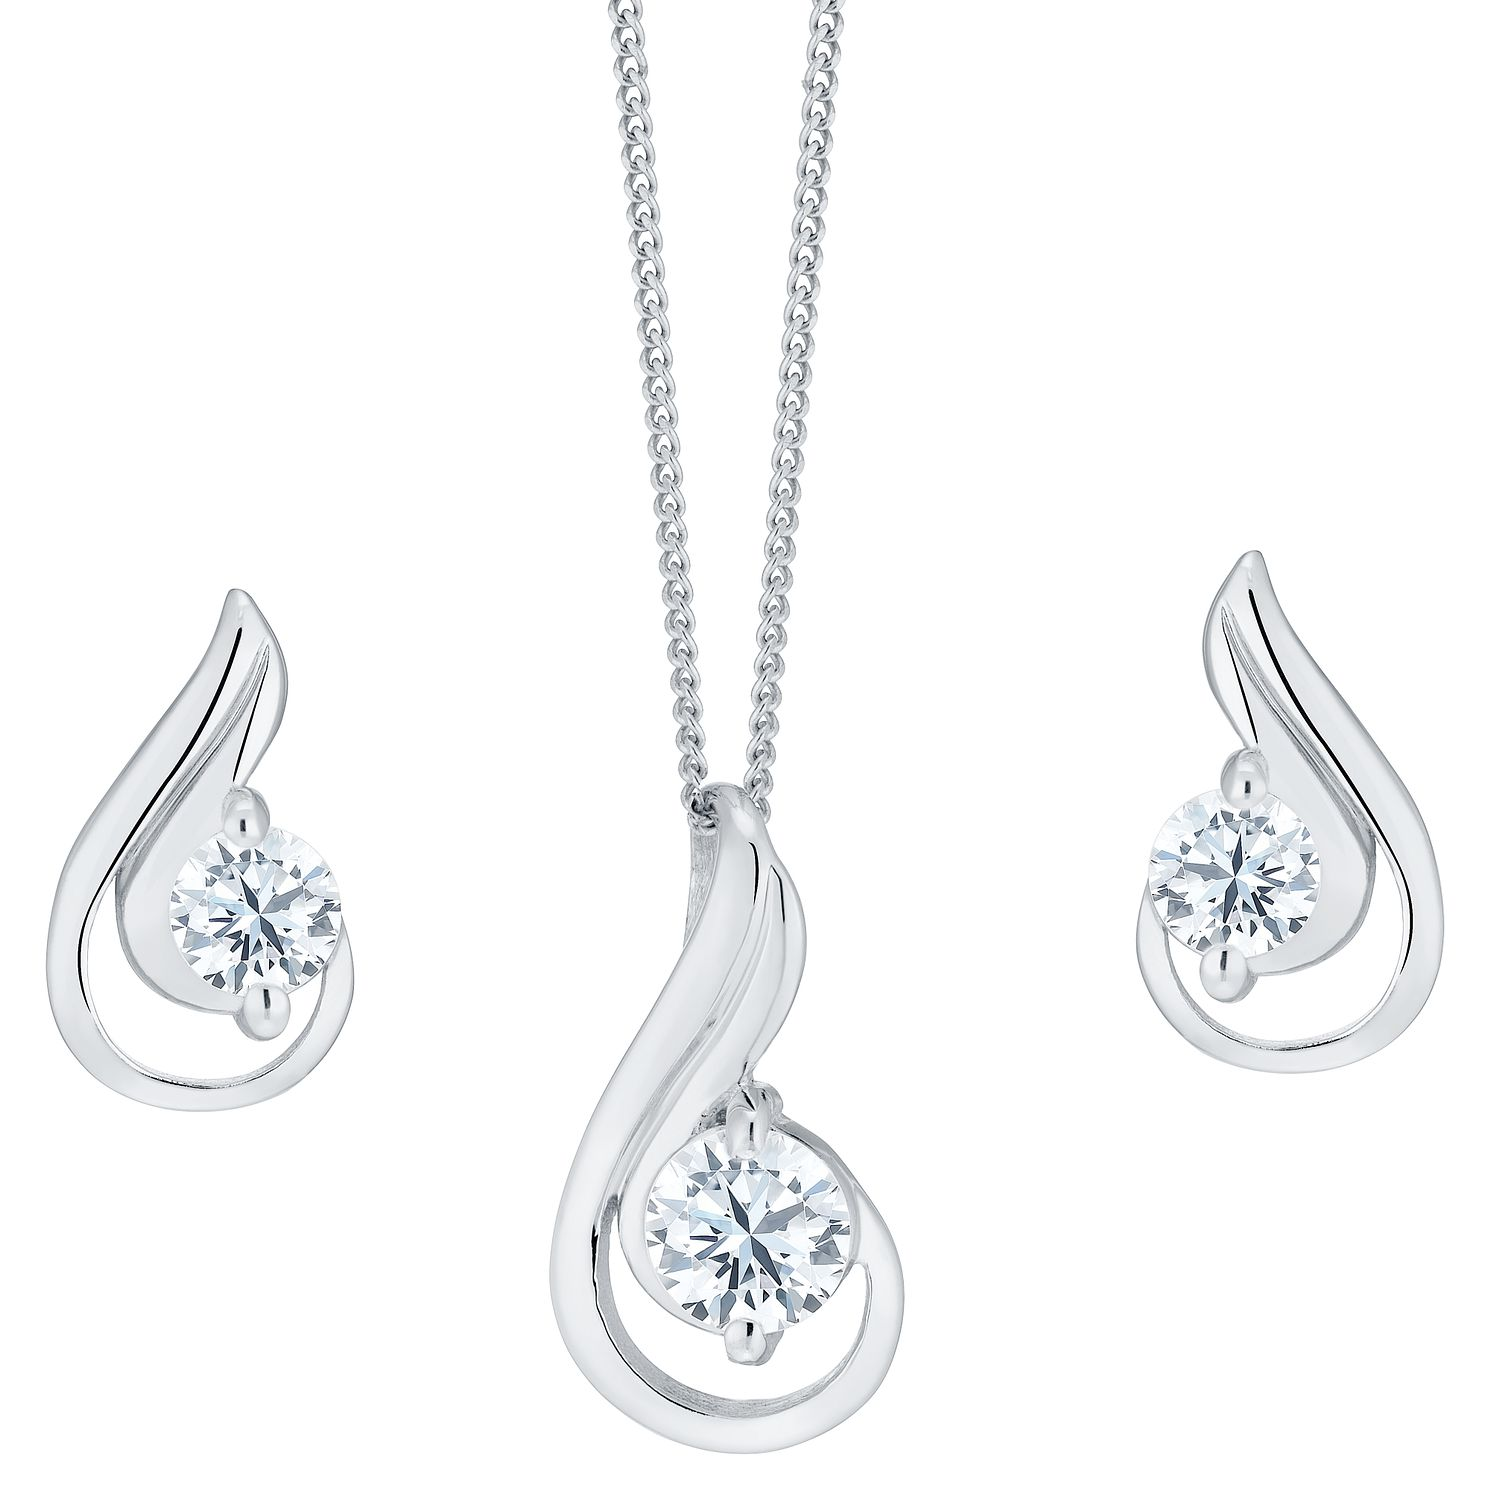 Sterling Silver And Cubic Zirconia Earring And Pendant Set - Product number 3888320